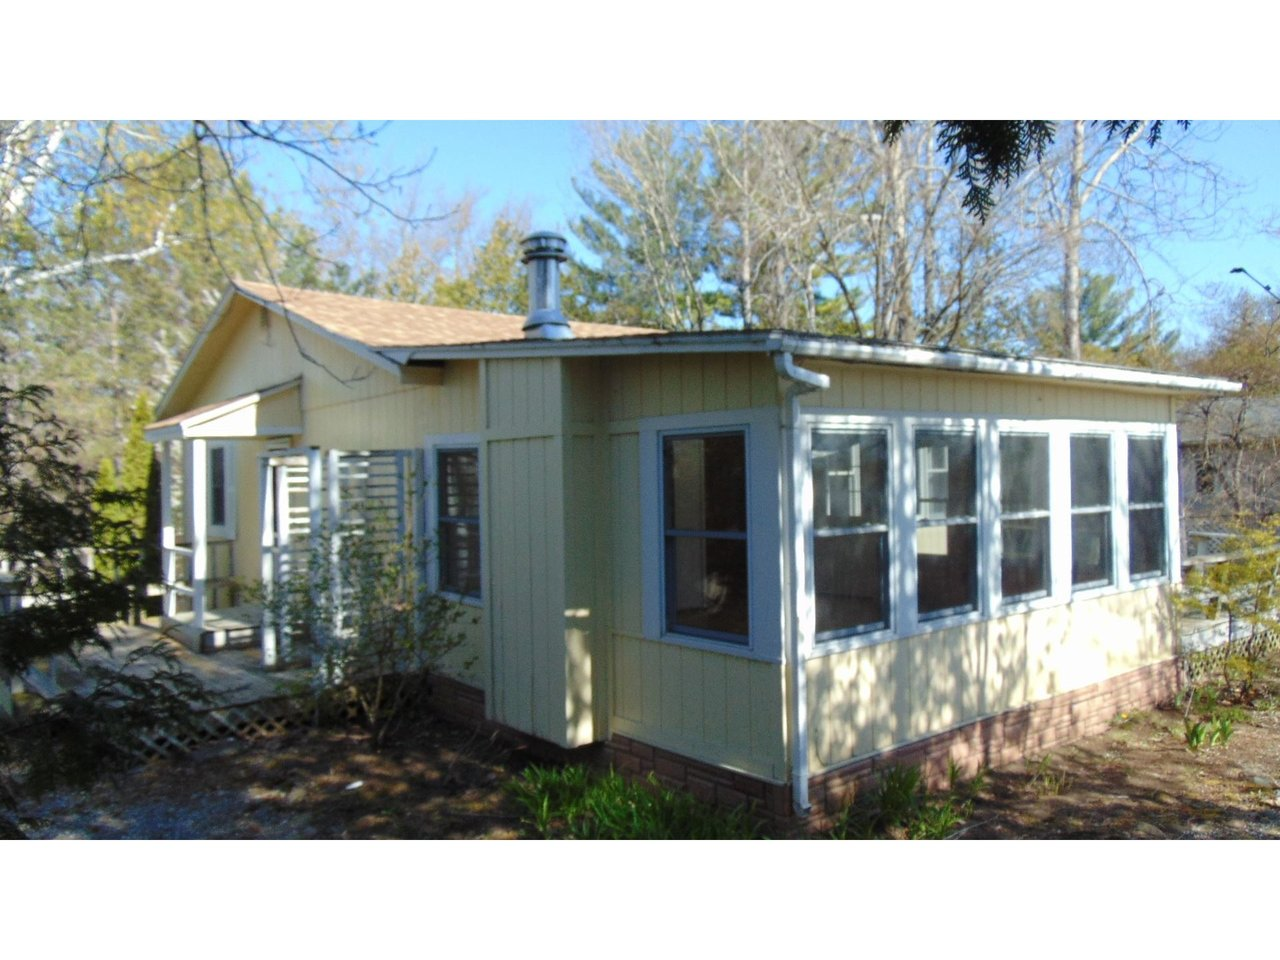 Sold property in Alburgh